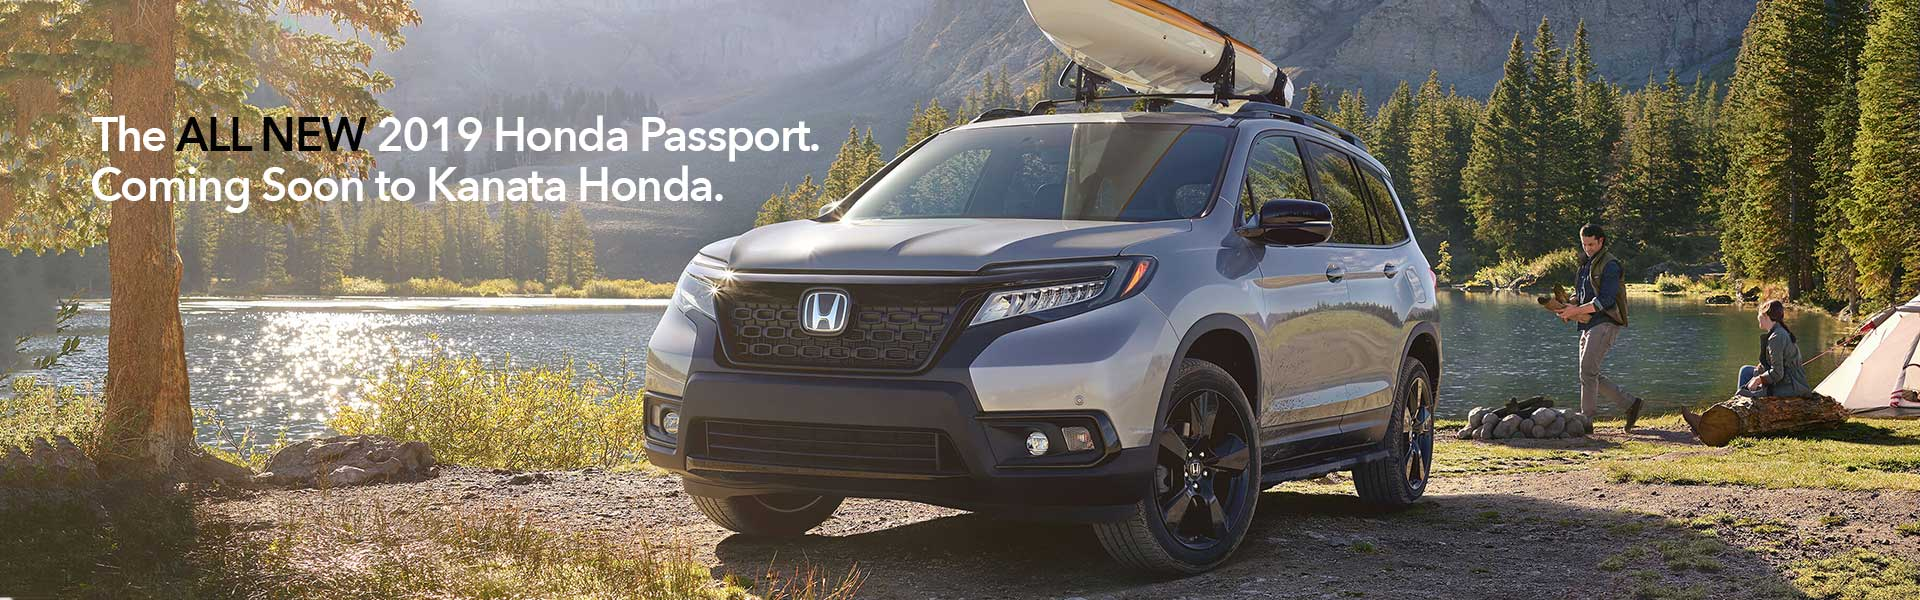 New 2019 Passport Coming Soon To Kanata Honda